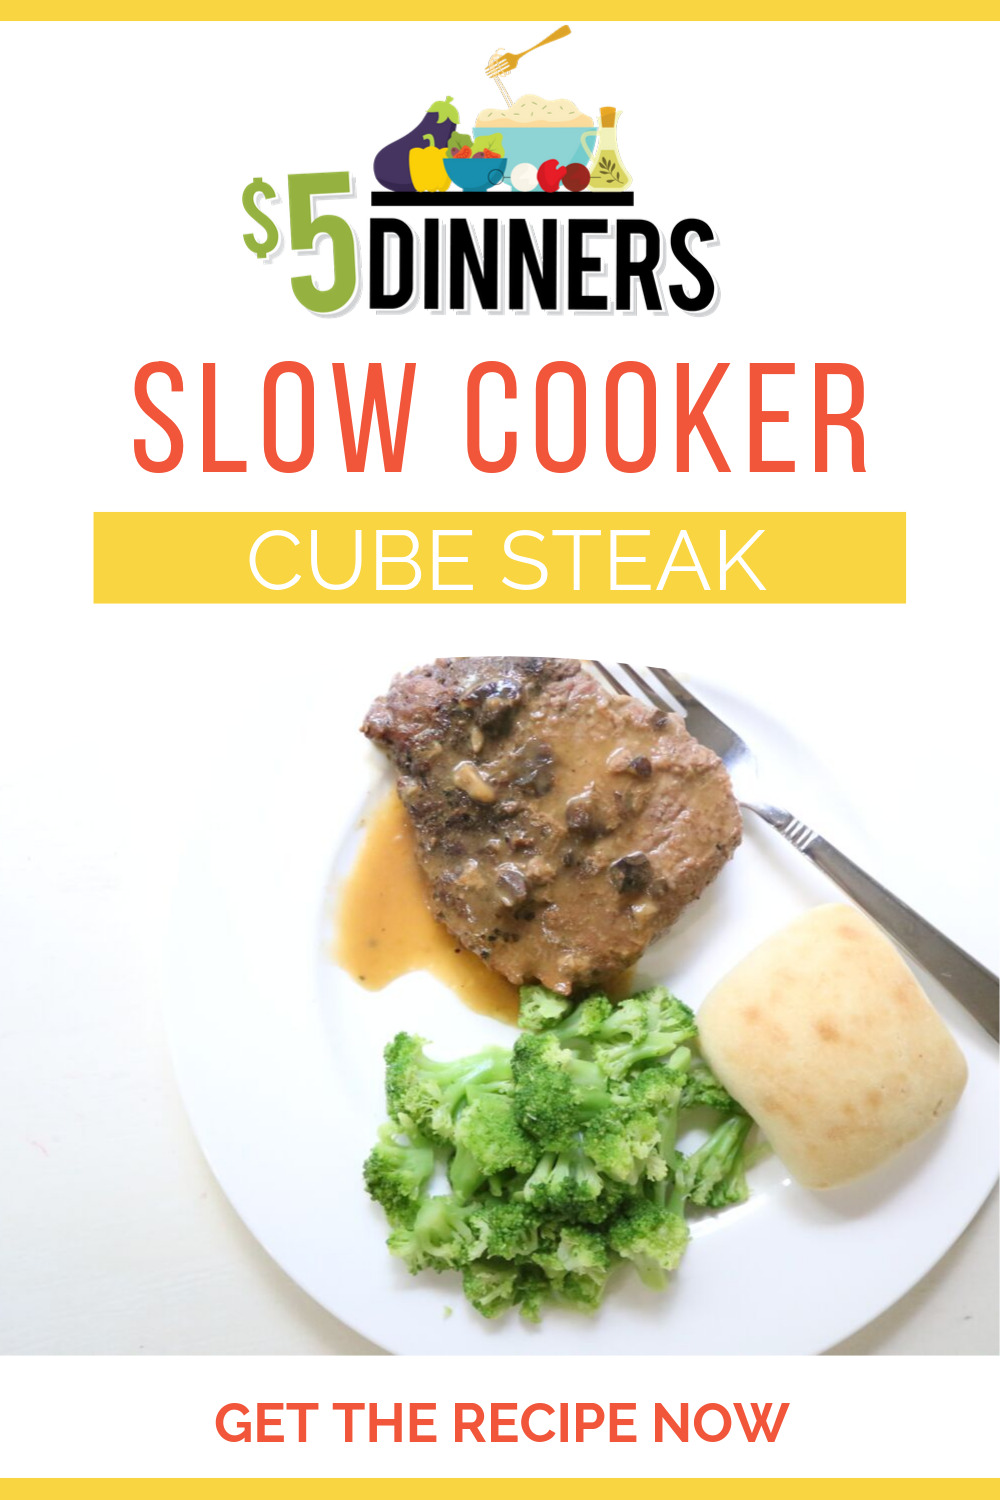 Slow Cooker Cube Steak